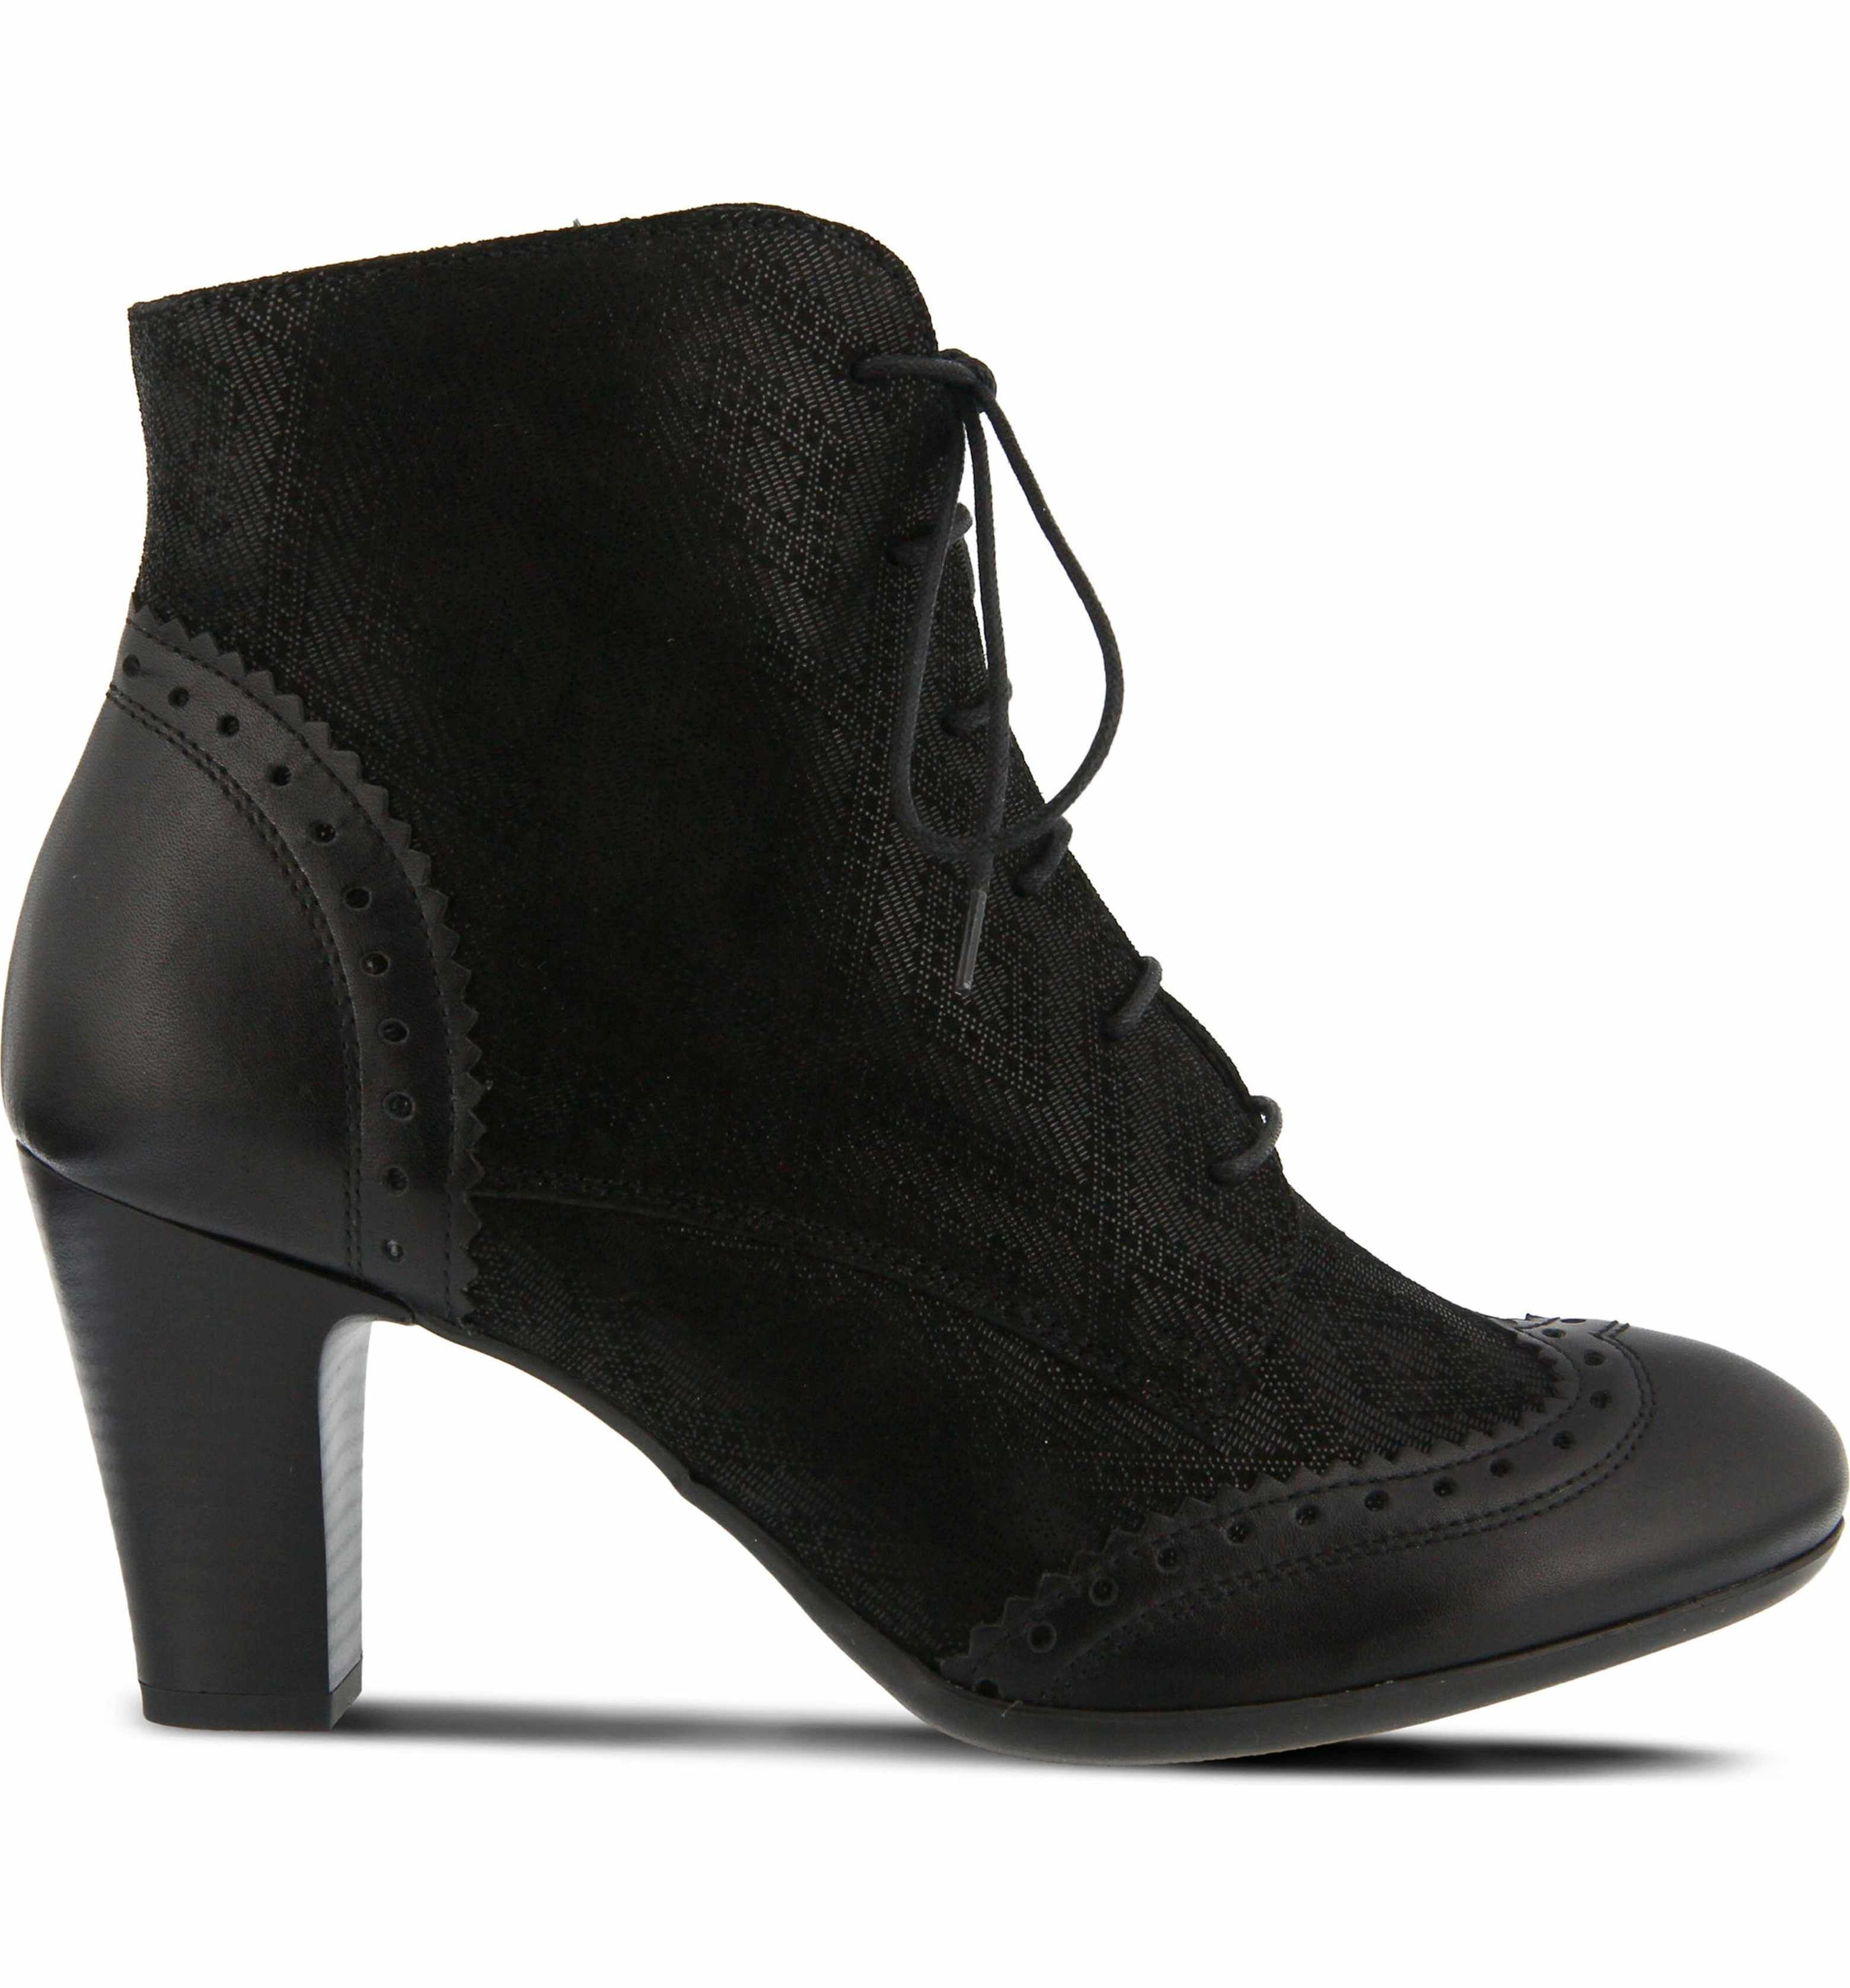 025f6cf737744 Main Image - Spring Step Gem Lace-Up Bootie (Women) | bootses ...